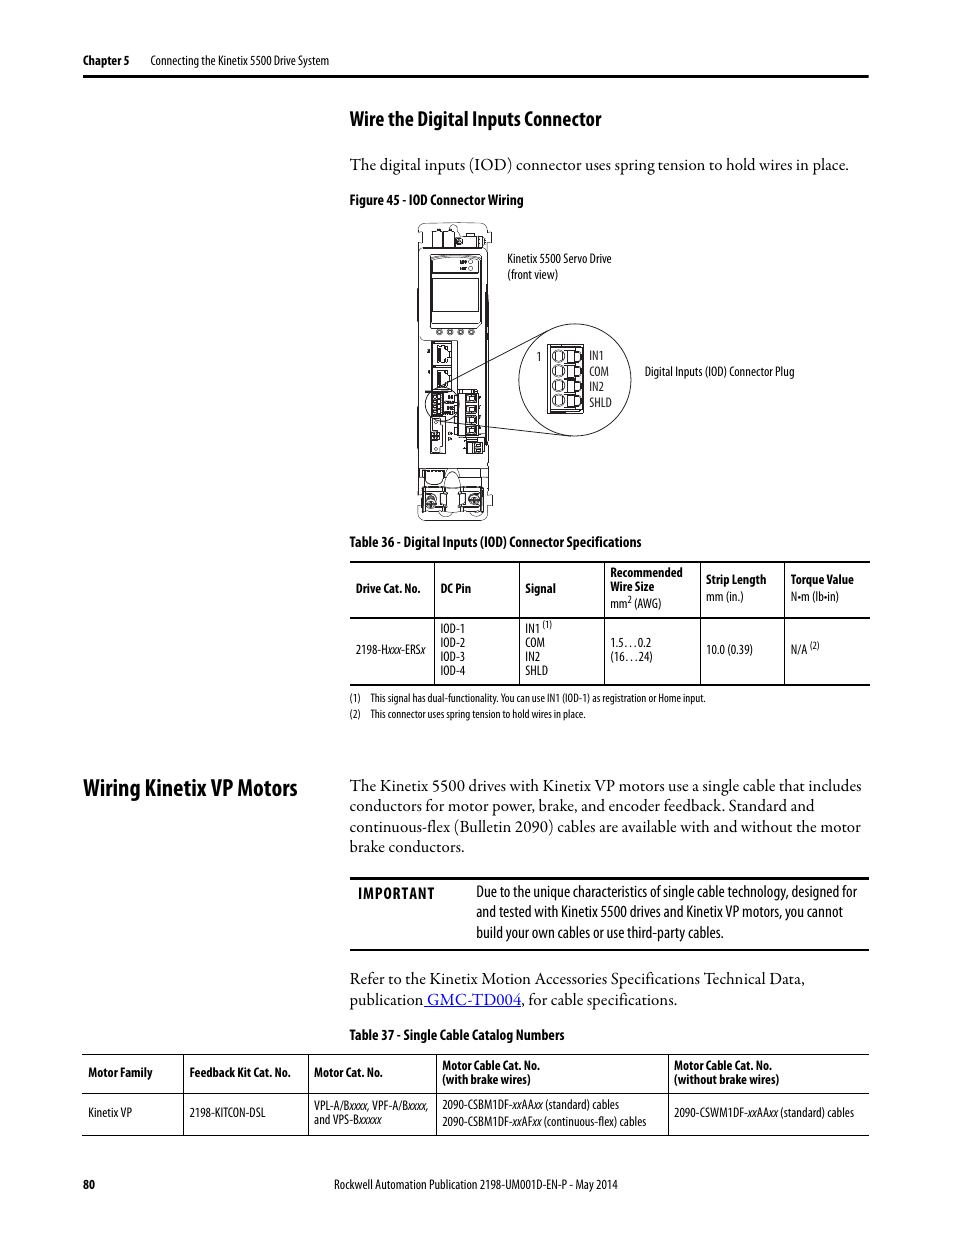 medium resolution of wire the digital inputs connector wiring kinetix vp motors rockwell automation 2198 hxxx kinetix 5500 servo drives user manual user manual page 80